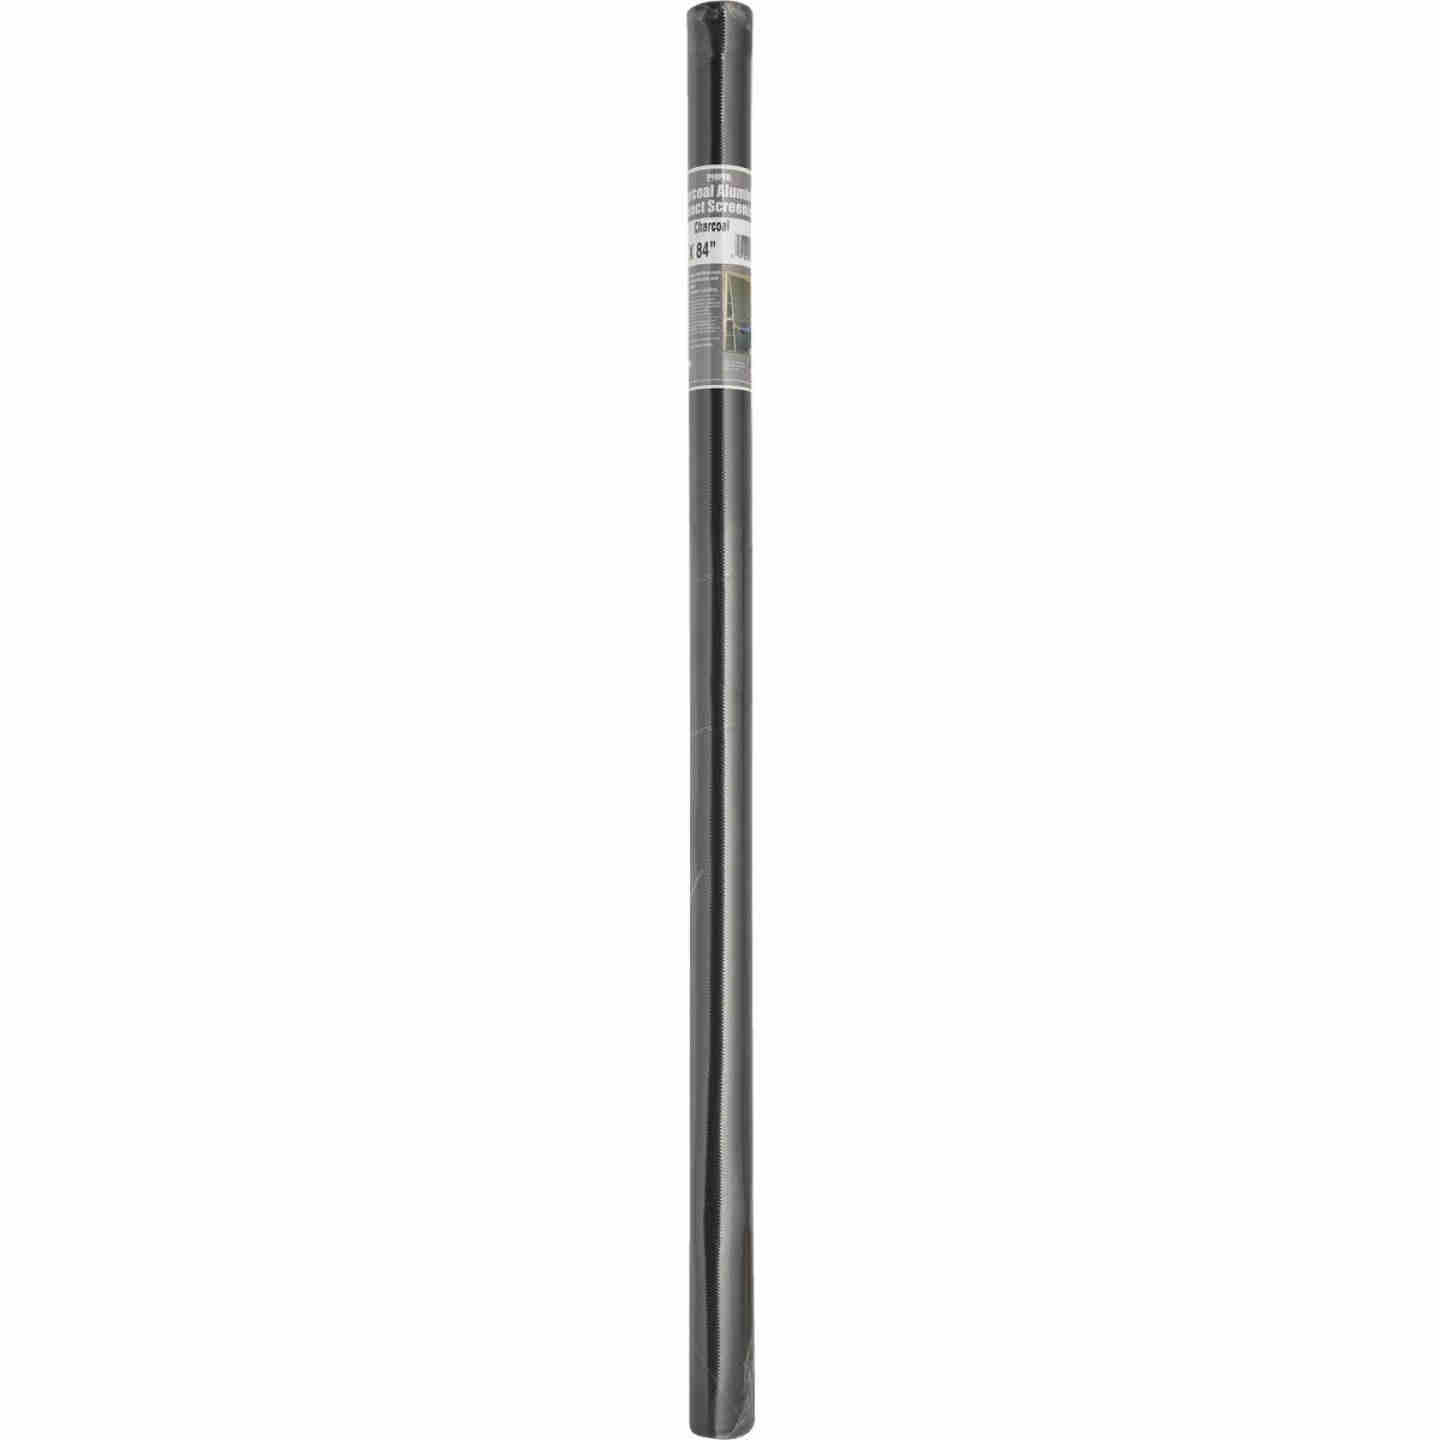 Phifer 48 In. x 84 In. Charcoal Aluminum Screen Ready Rolls Image 2